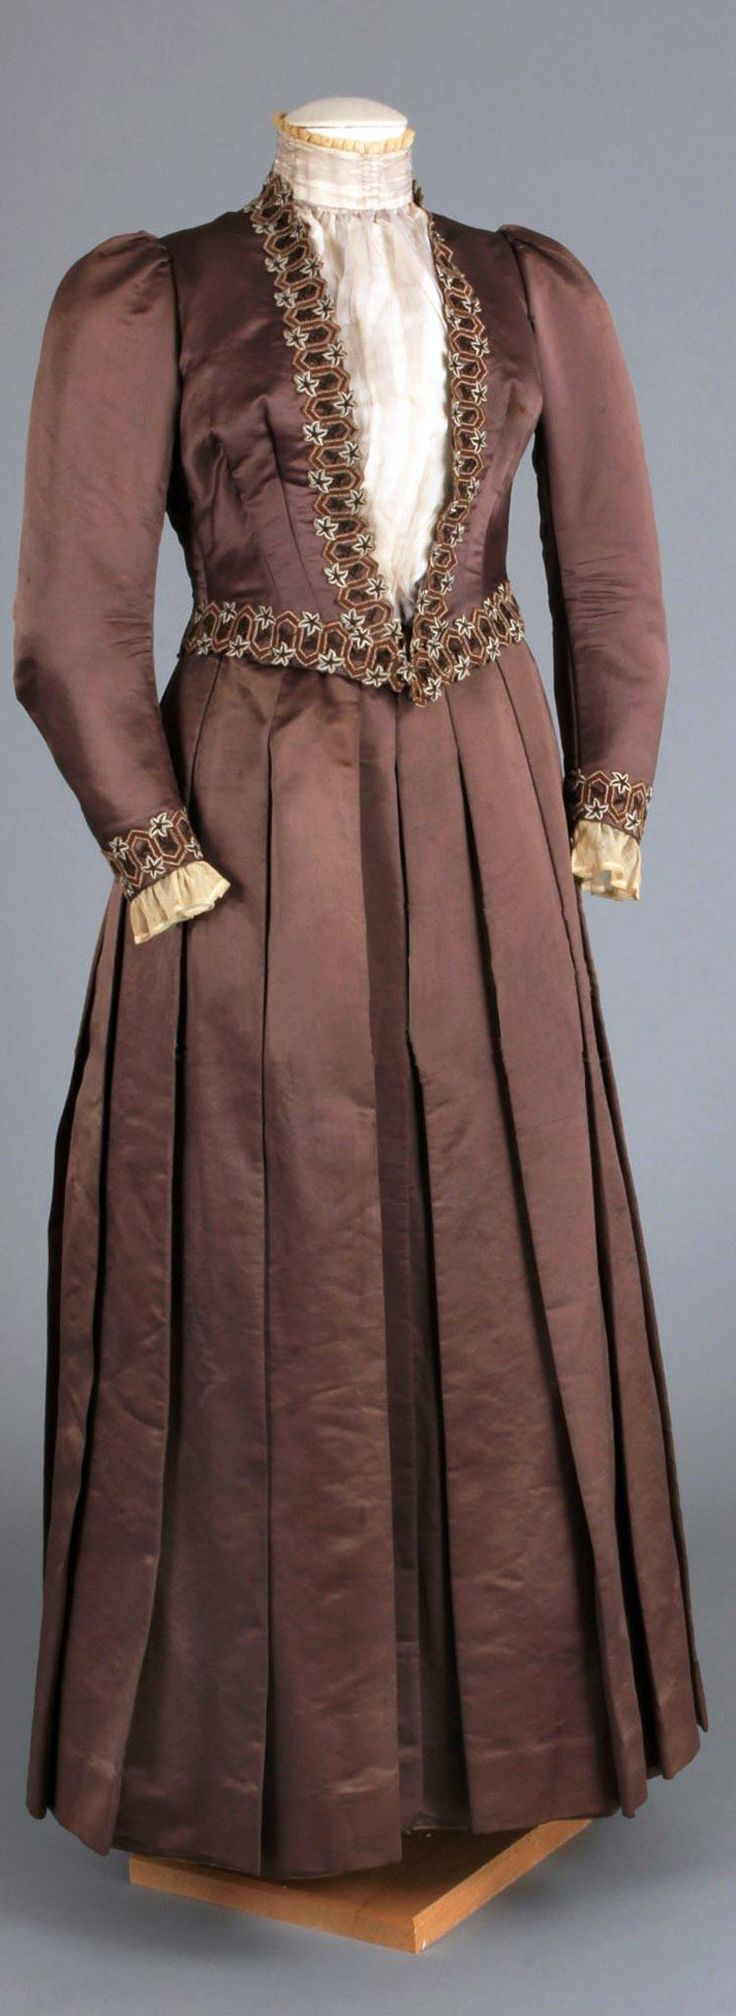 Wedding dress (two bodices & skirt) ca. 1888-91. Muted brown silk satin. The owner, Elizabeth H. Comley Howell (1842-1912), was a doctor who founded the the West Philadelphia Hospital for Women to provide a place where women could be treated by other women. Chester County (PA) Historical Society